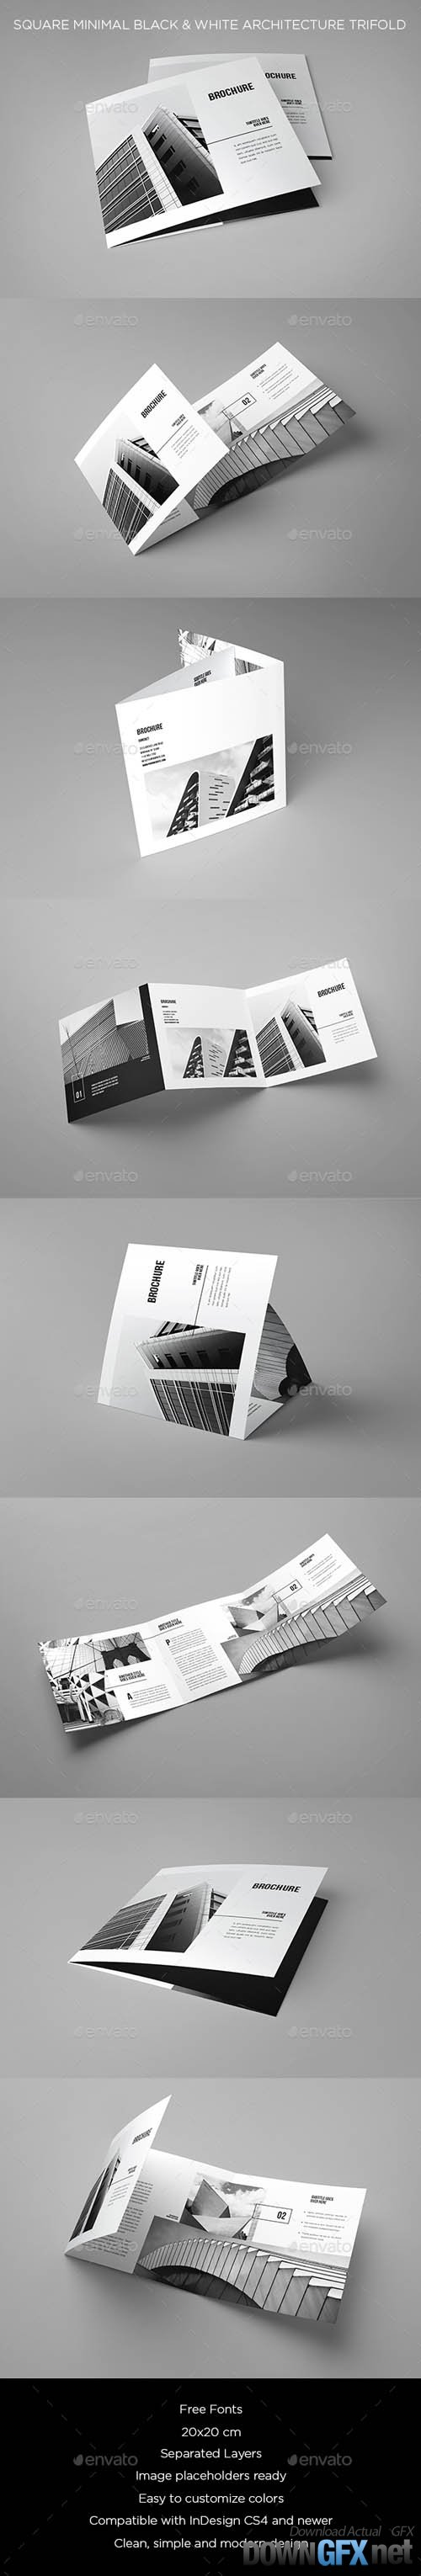 Square Minimal Black & White Architecture Trifold 20512196